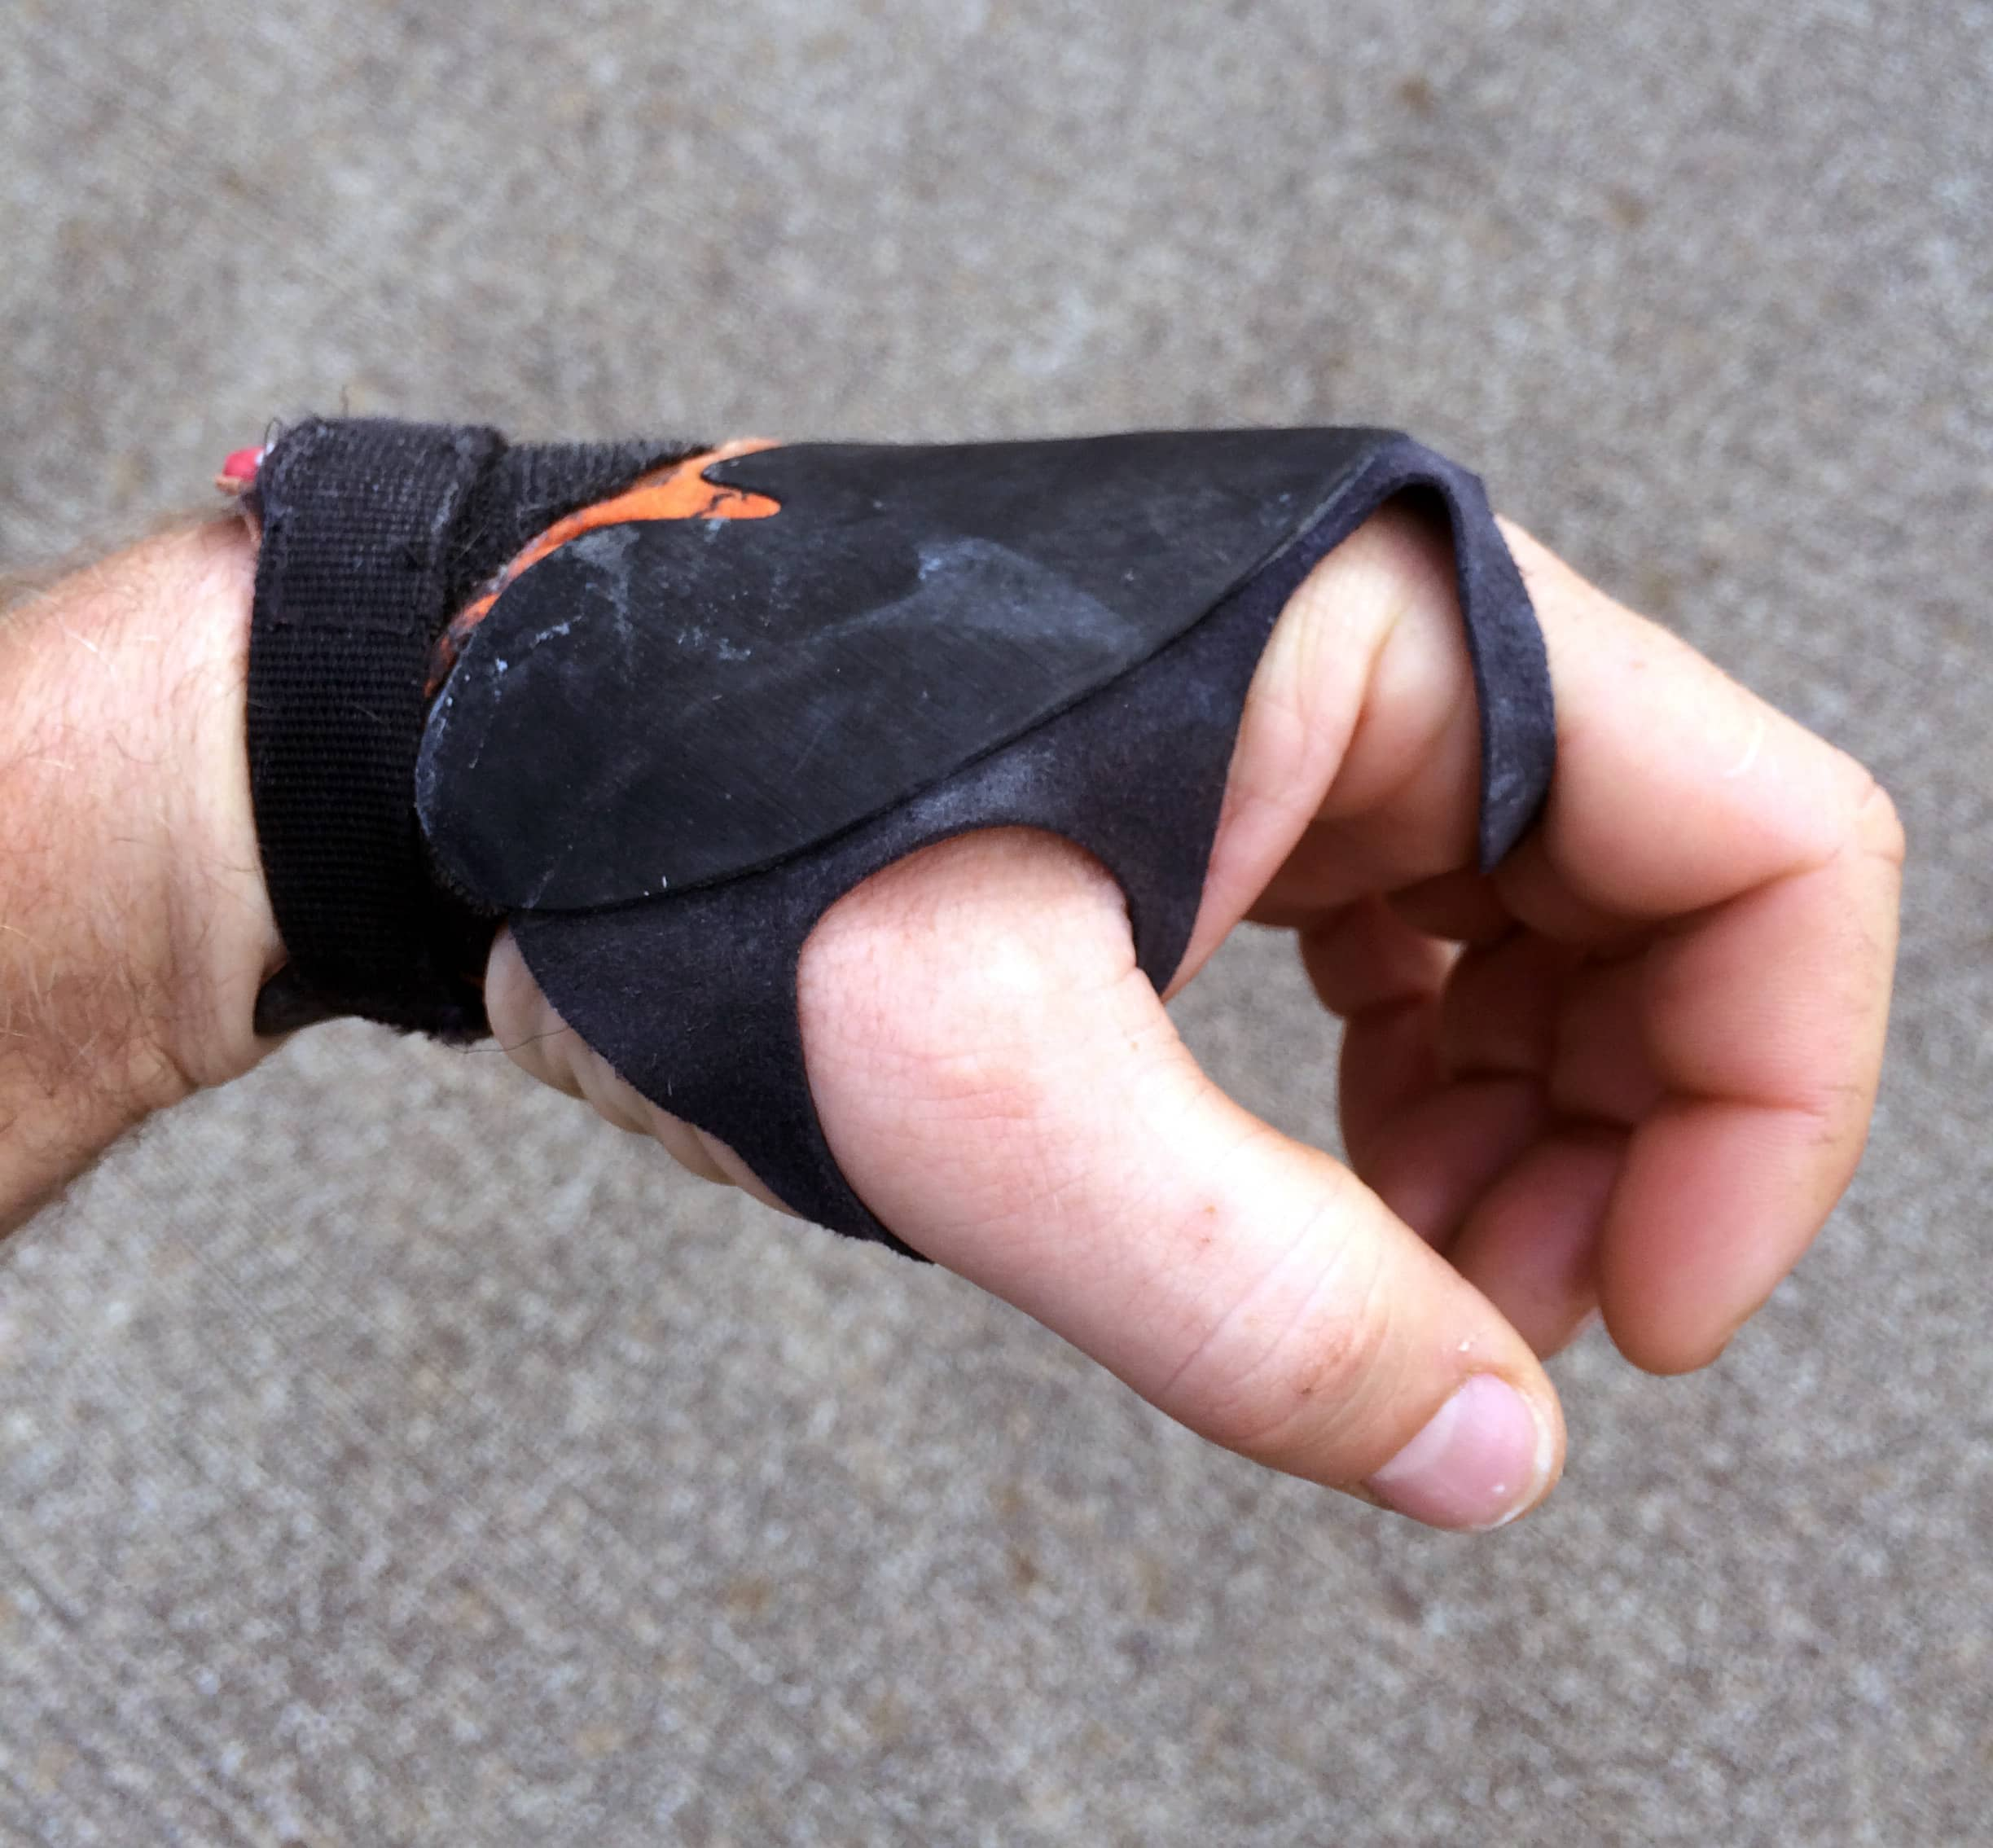 Maintains ... Ocun Crack Climbing Gloves Lite Excellent Protection for Jamming